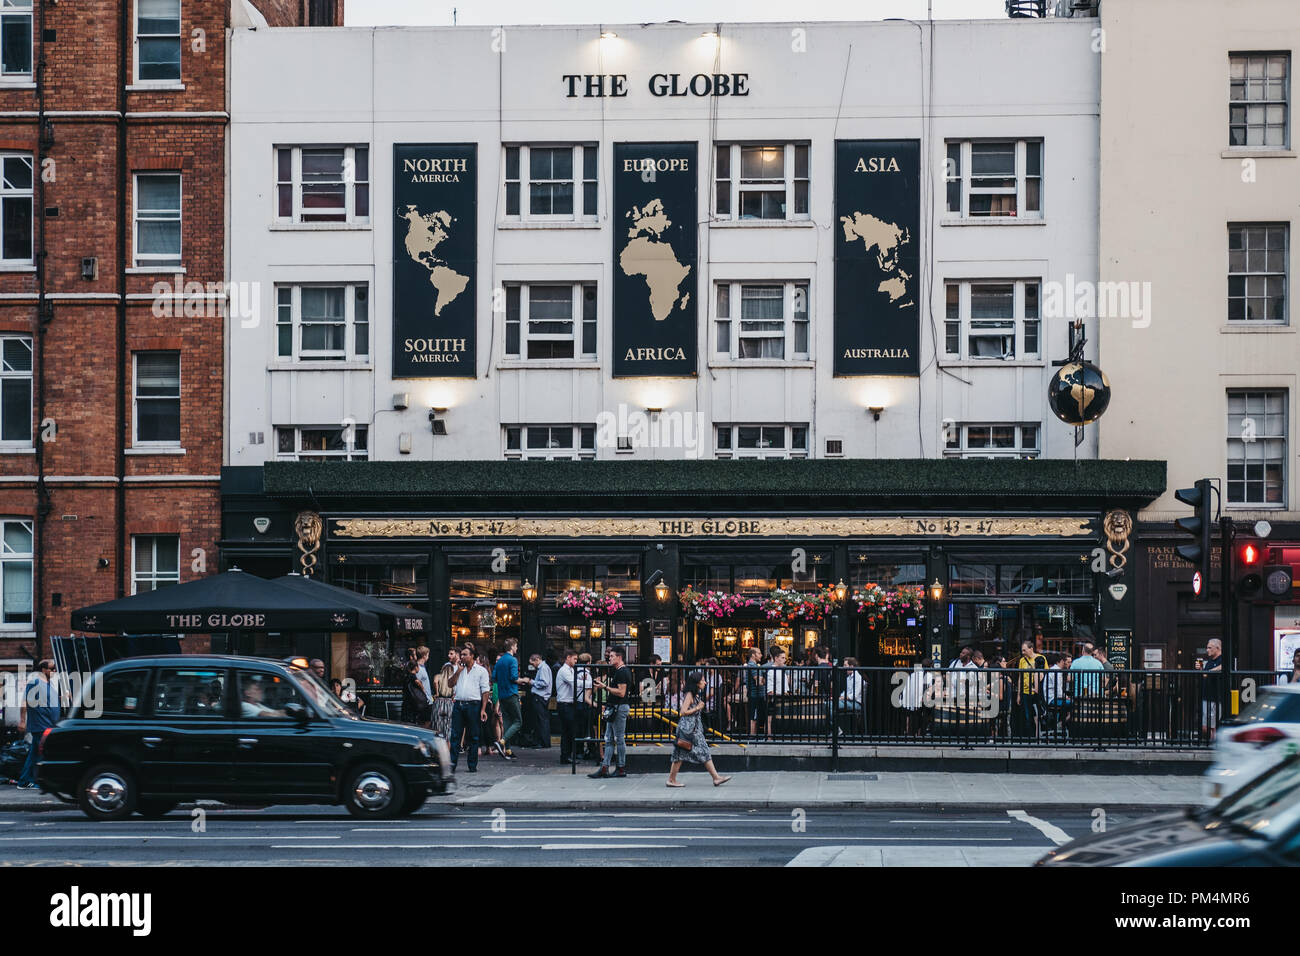 London, UK - July 24, 2018: People drinking outside The Globe pub in Marylebone, London, the area famous for Madame Tussauds waxwork museum and the Sh Stock Photo